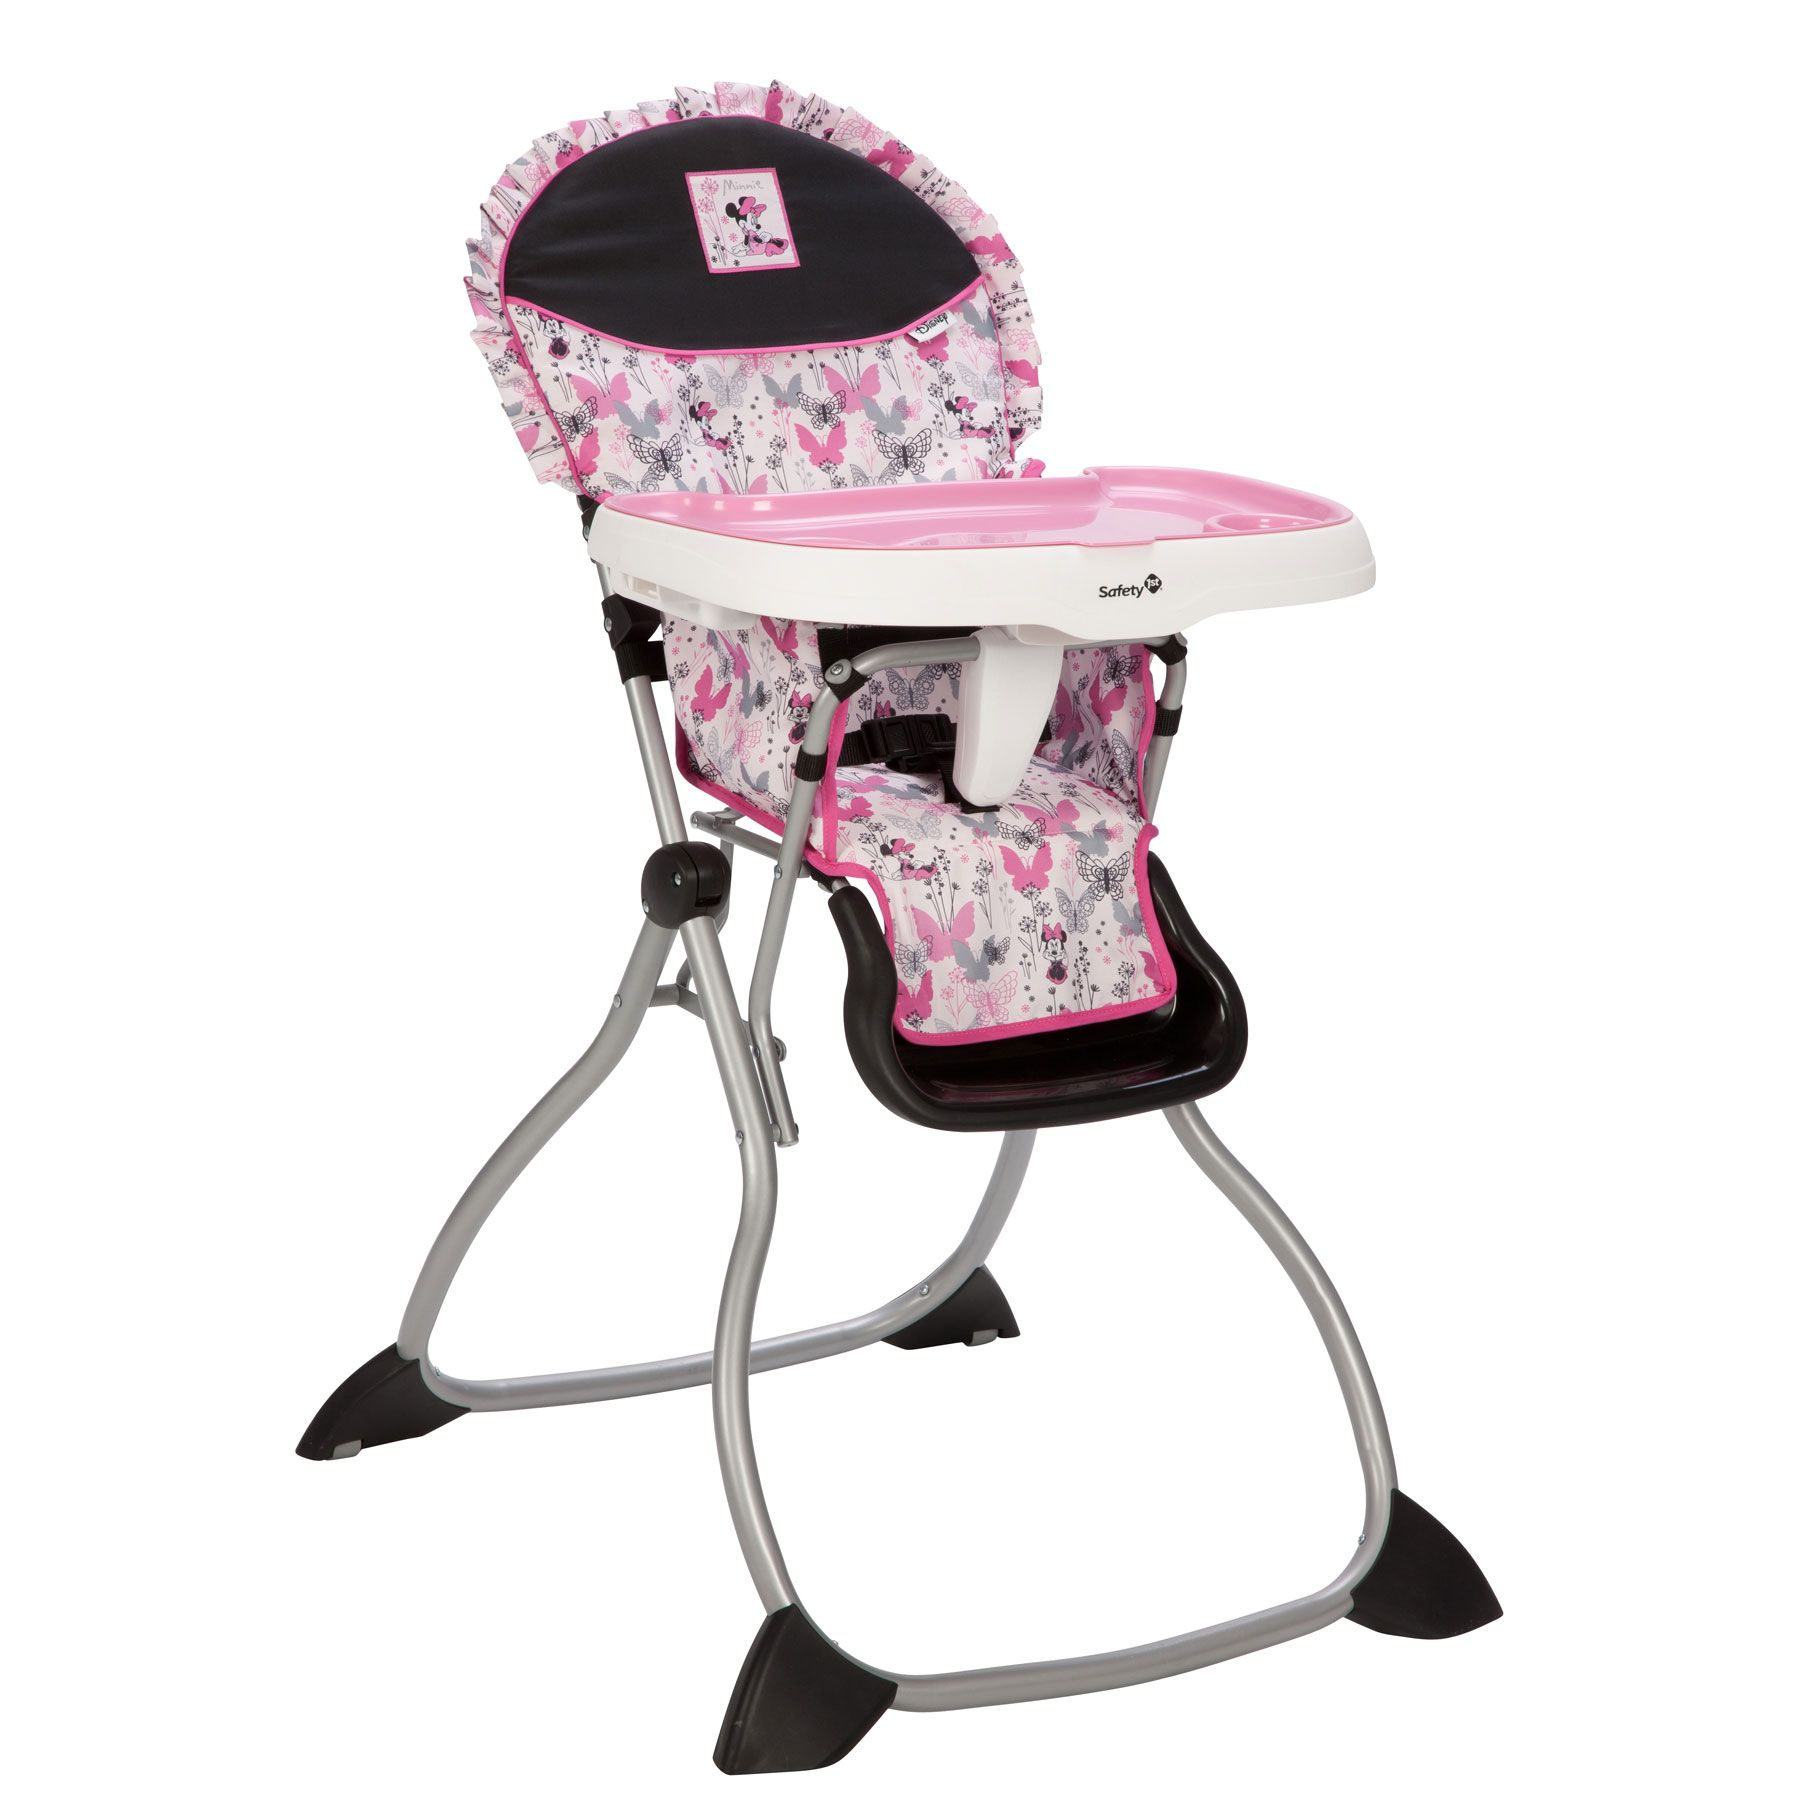 This pink grey and black Minnie Mouse high chair is as simple to